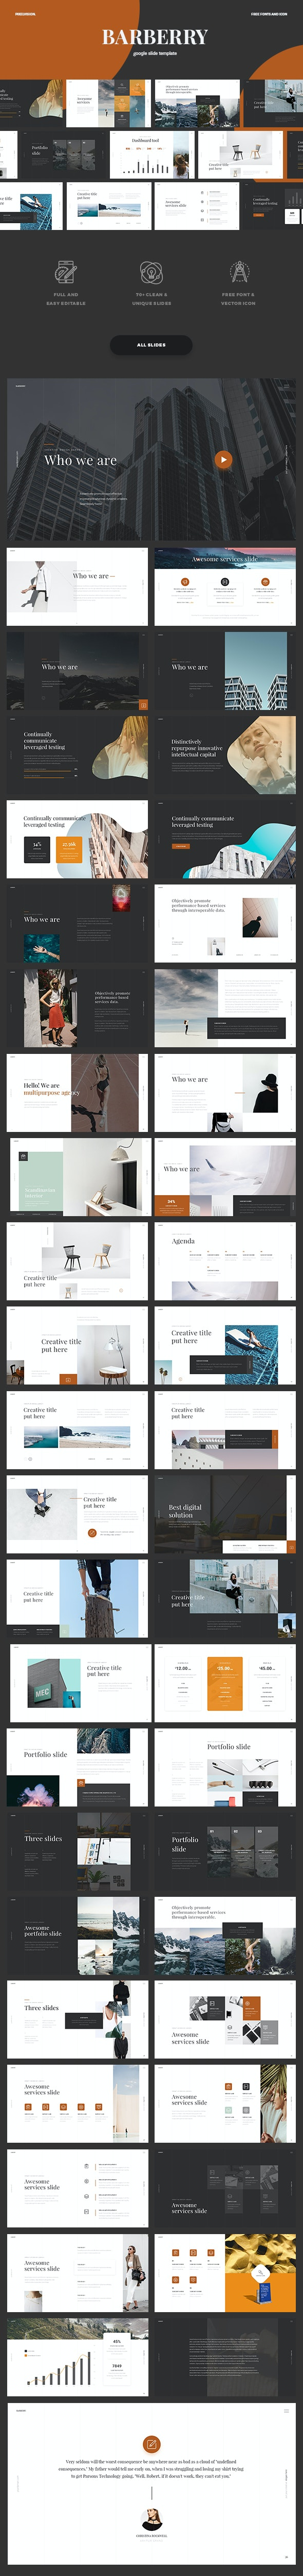 Barberry - Powerpoint Presentation - PowerPoint Templates Presentation Templates